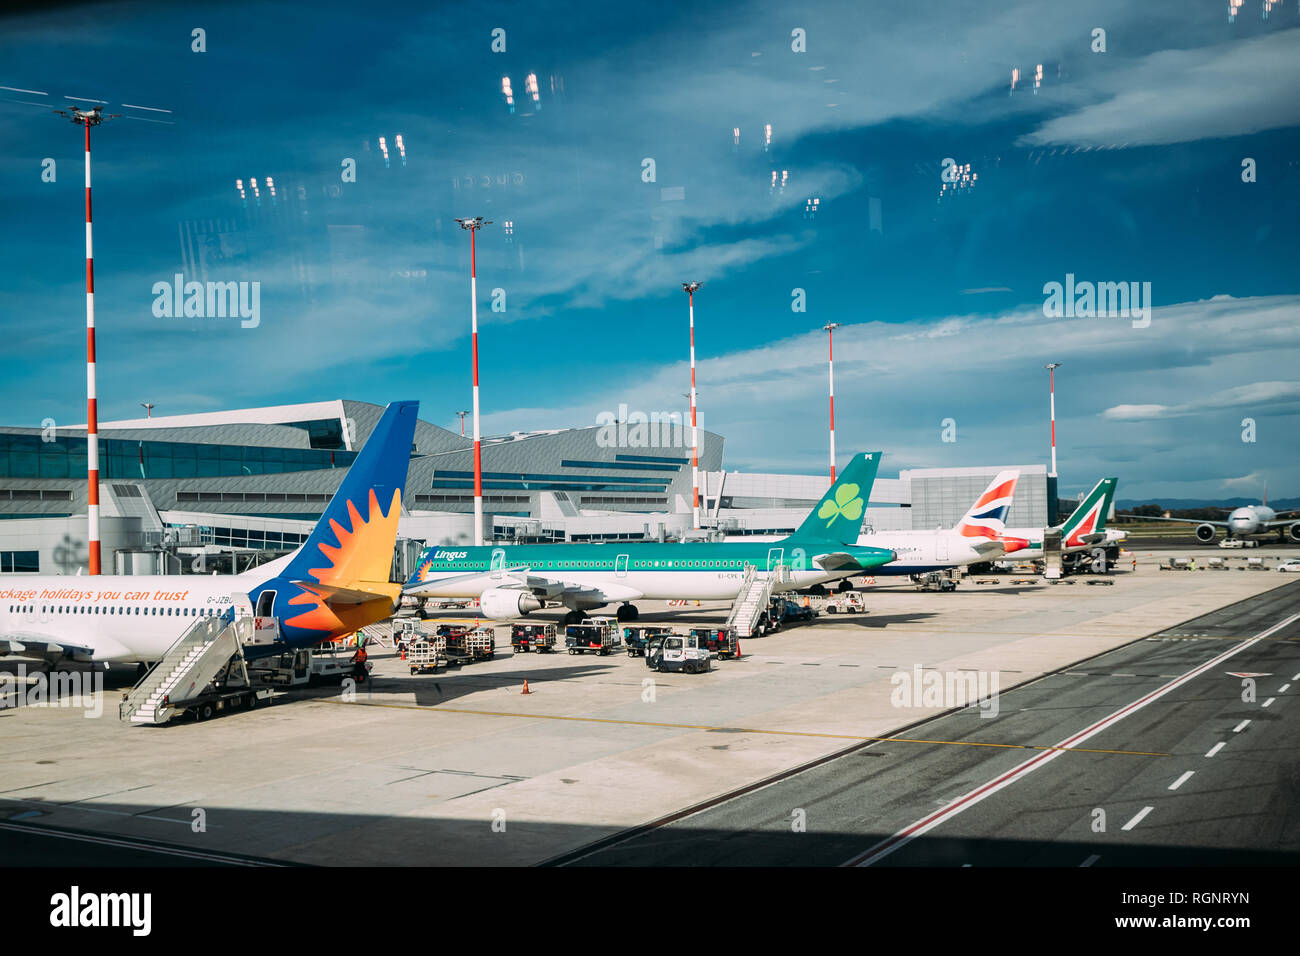 Fiumicino, Italy - October 22, 2018: Aircrafts Planes Of Different Airlines Stand At Rome–Fiumicino International Airport 'Leonardo Da Vinci' In Autum - Stock Image